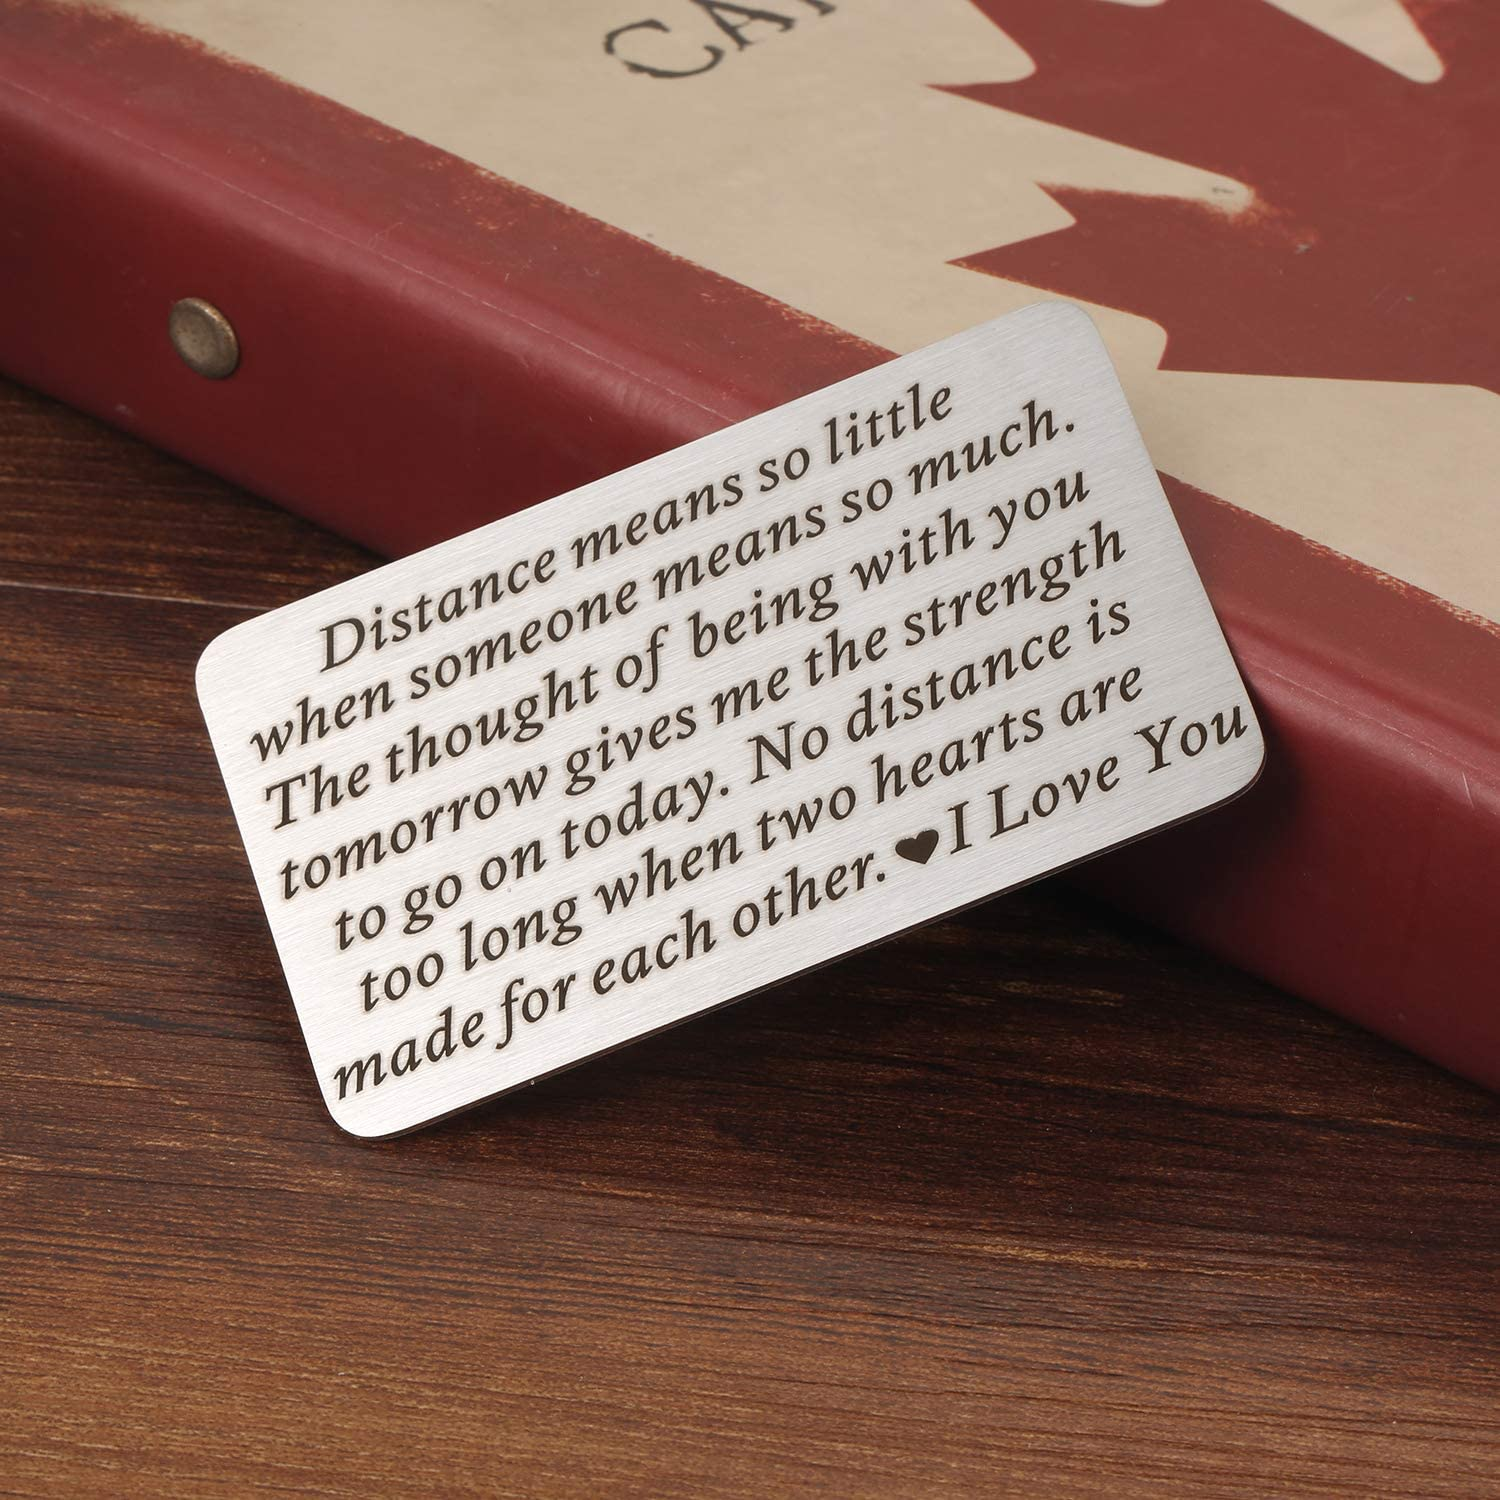 No Distance Is Too Long When Two Hearts are Made for Each Other Deployment Gifts for Him Her Long Distance Relationships Gifts for Boyfriend Husband Mini Love Note Wallet Card Insert